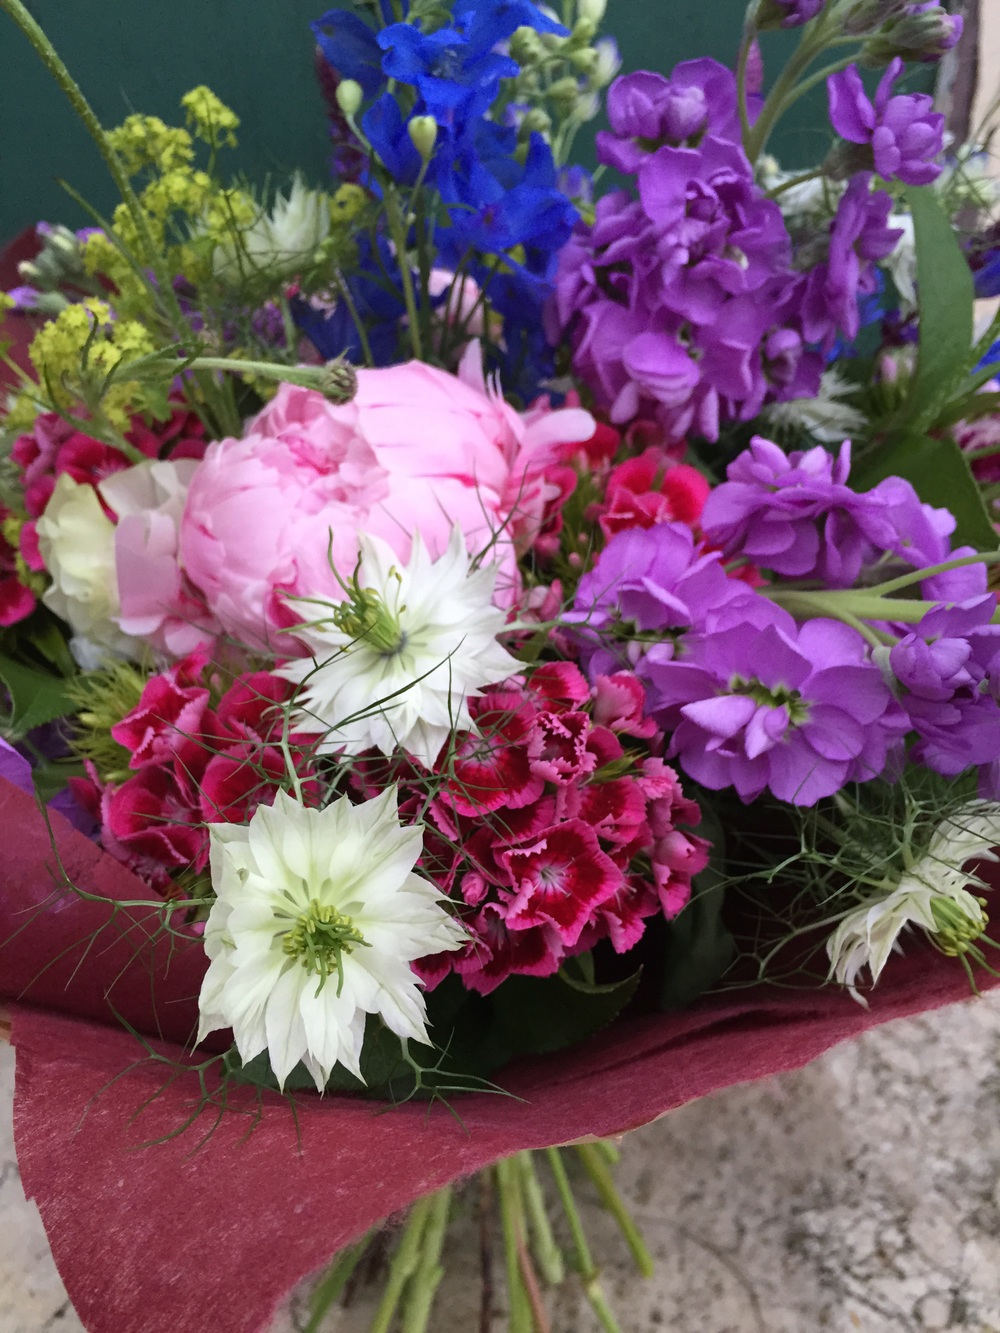 Nigella, Peonies, Sweet William, Stocks, Delphinium and many more.